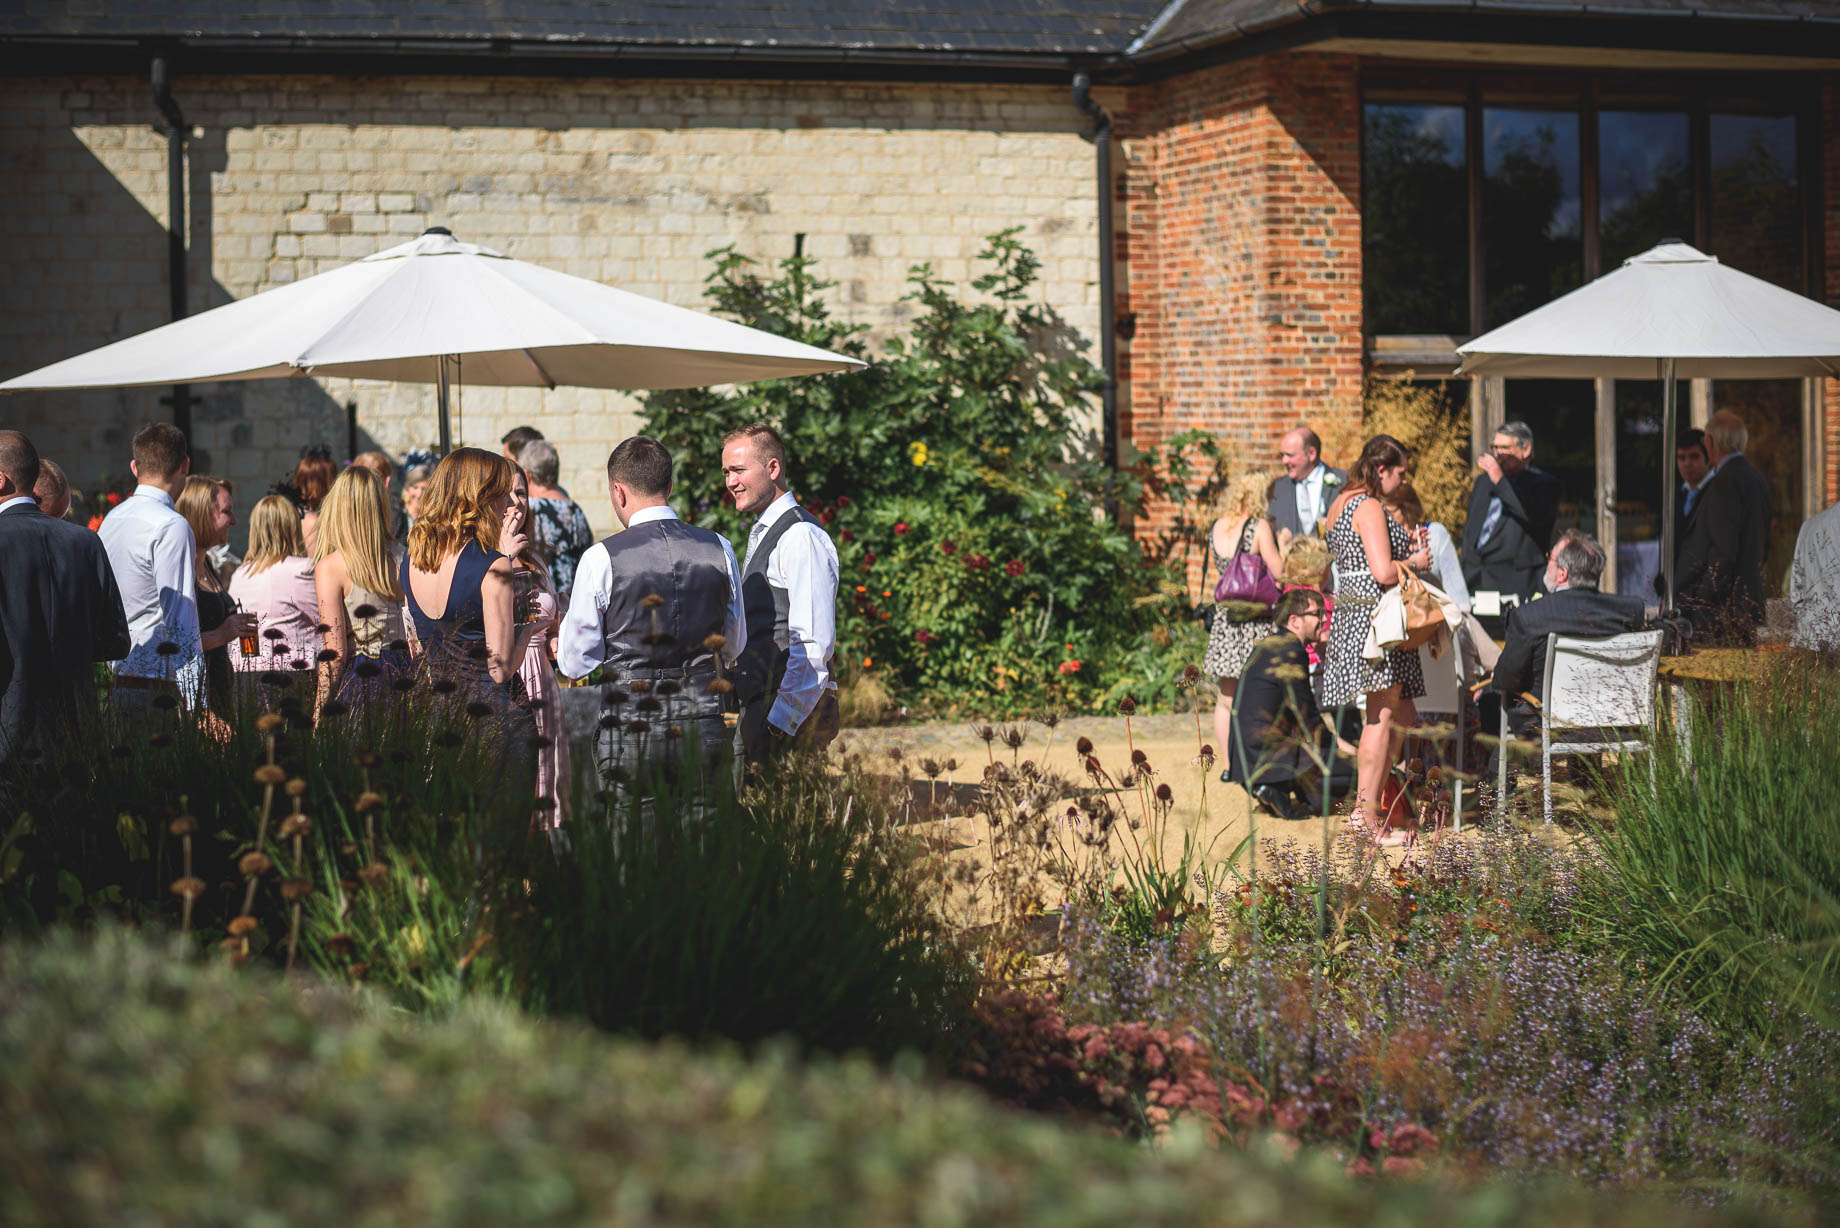 Bury Court Barn wedding photography - Guy Collier - Kirsty and Lewis (79 of 150)